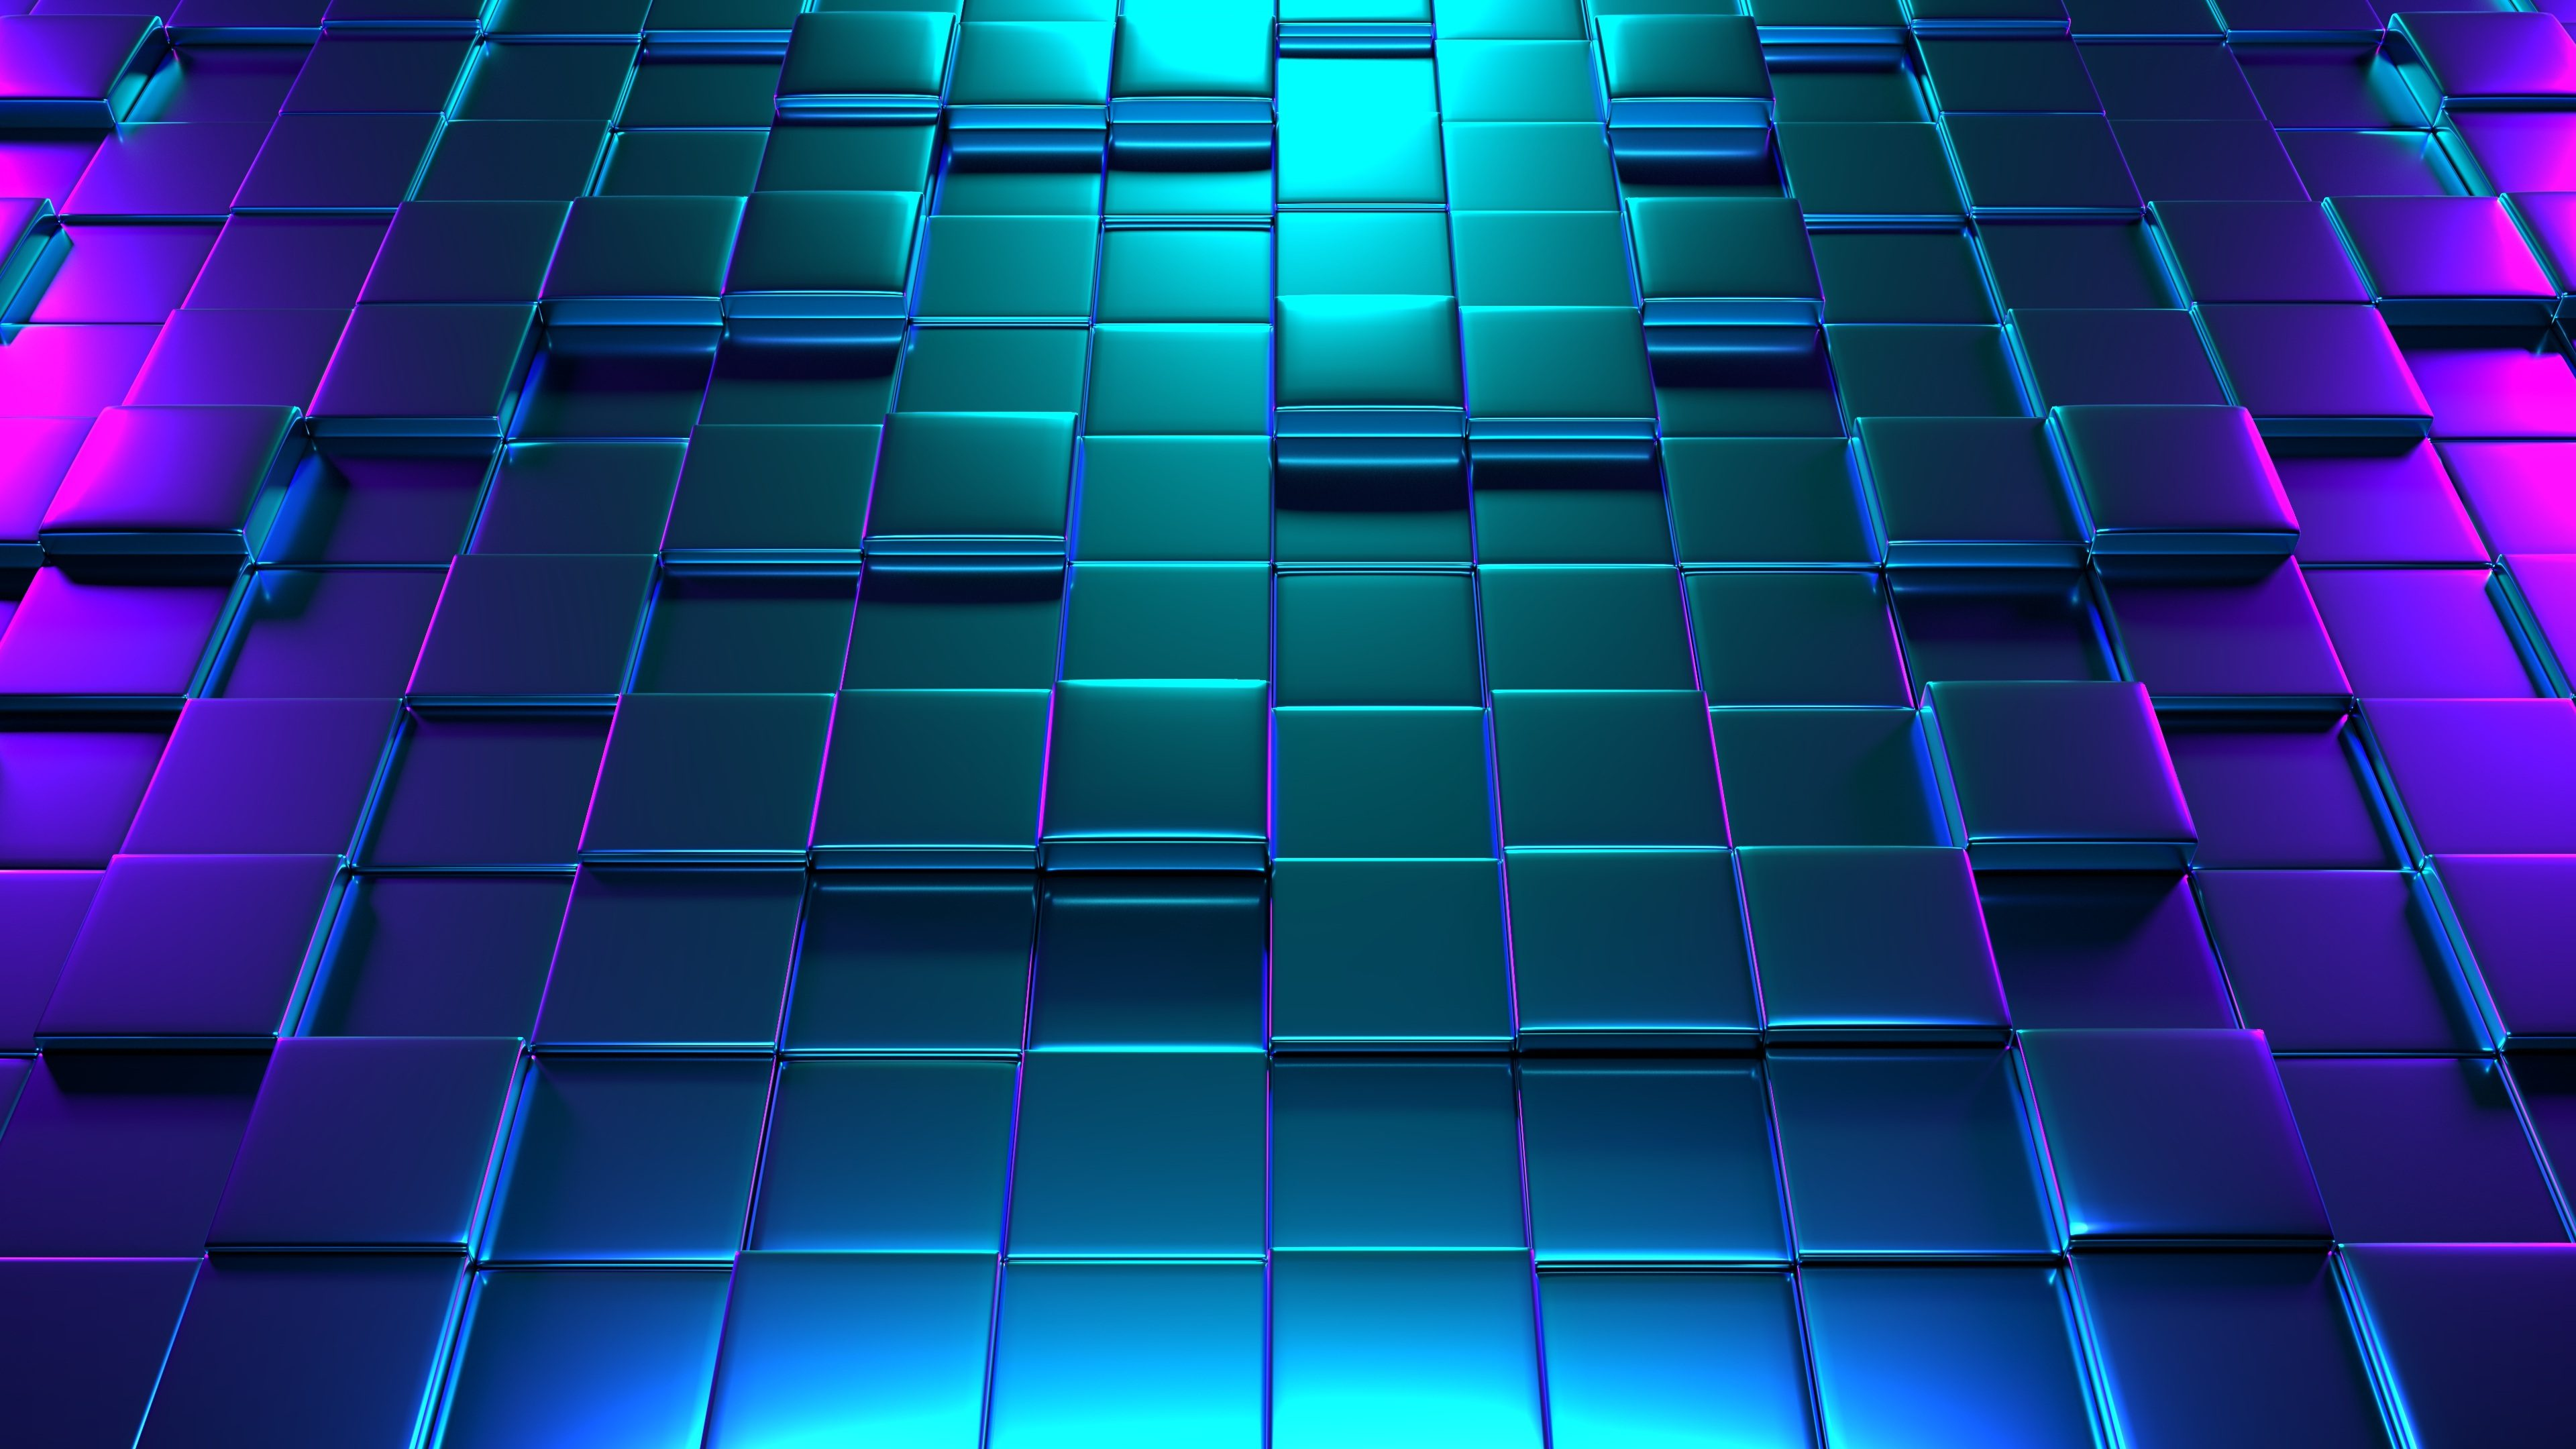 Cube Abstract Colorful Blue Purple 3D 4K Wallpaper - Best ...